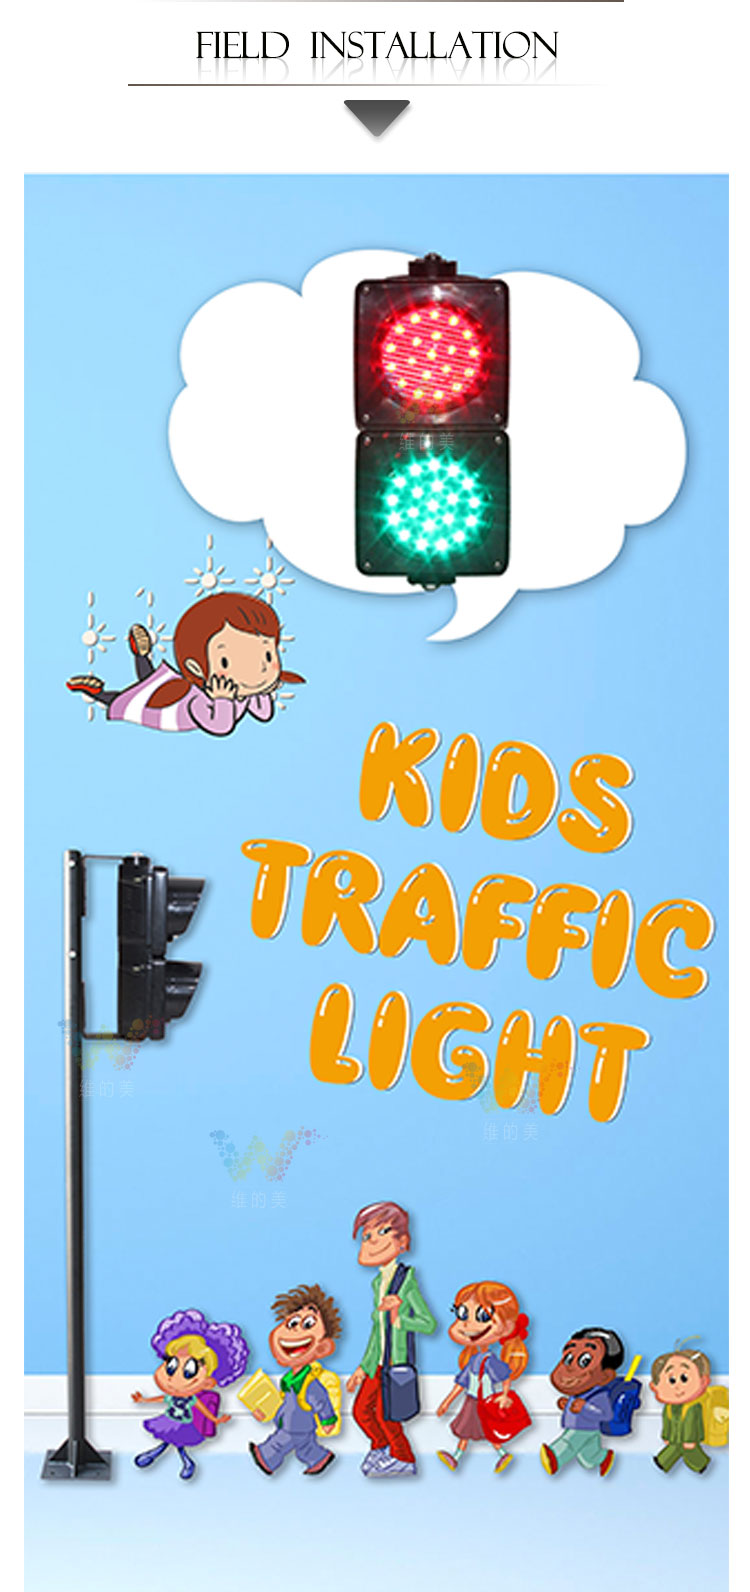 traffic-light_12